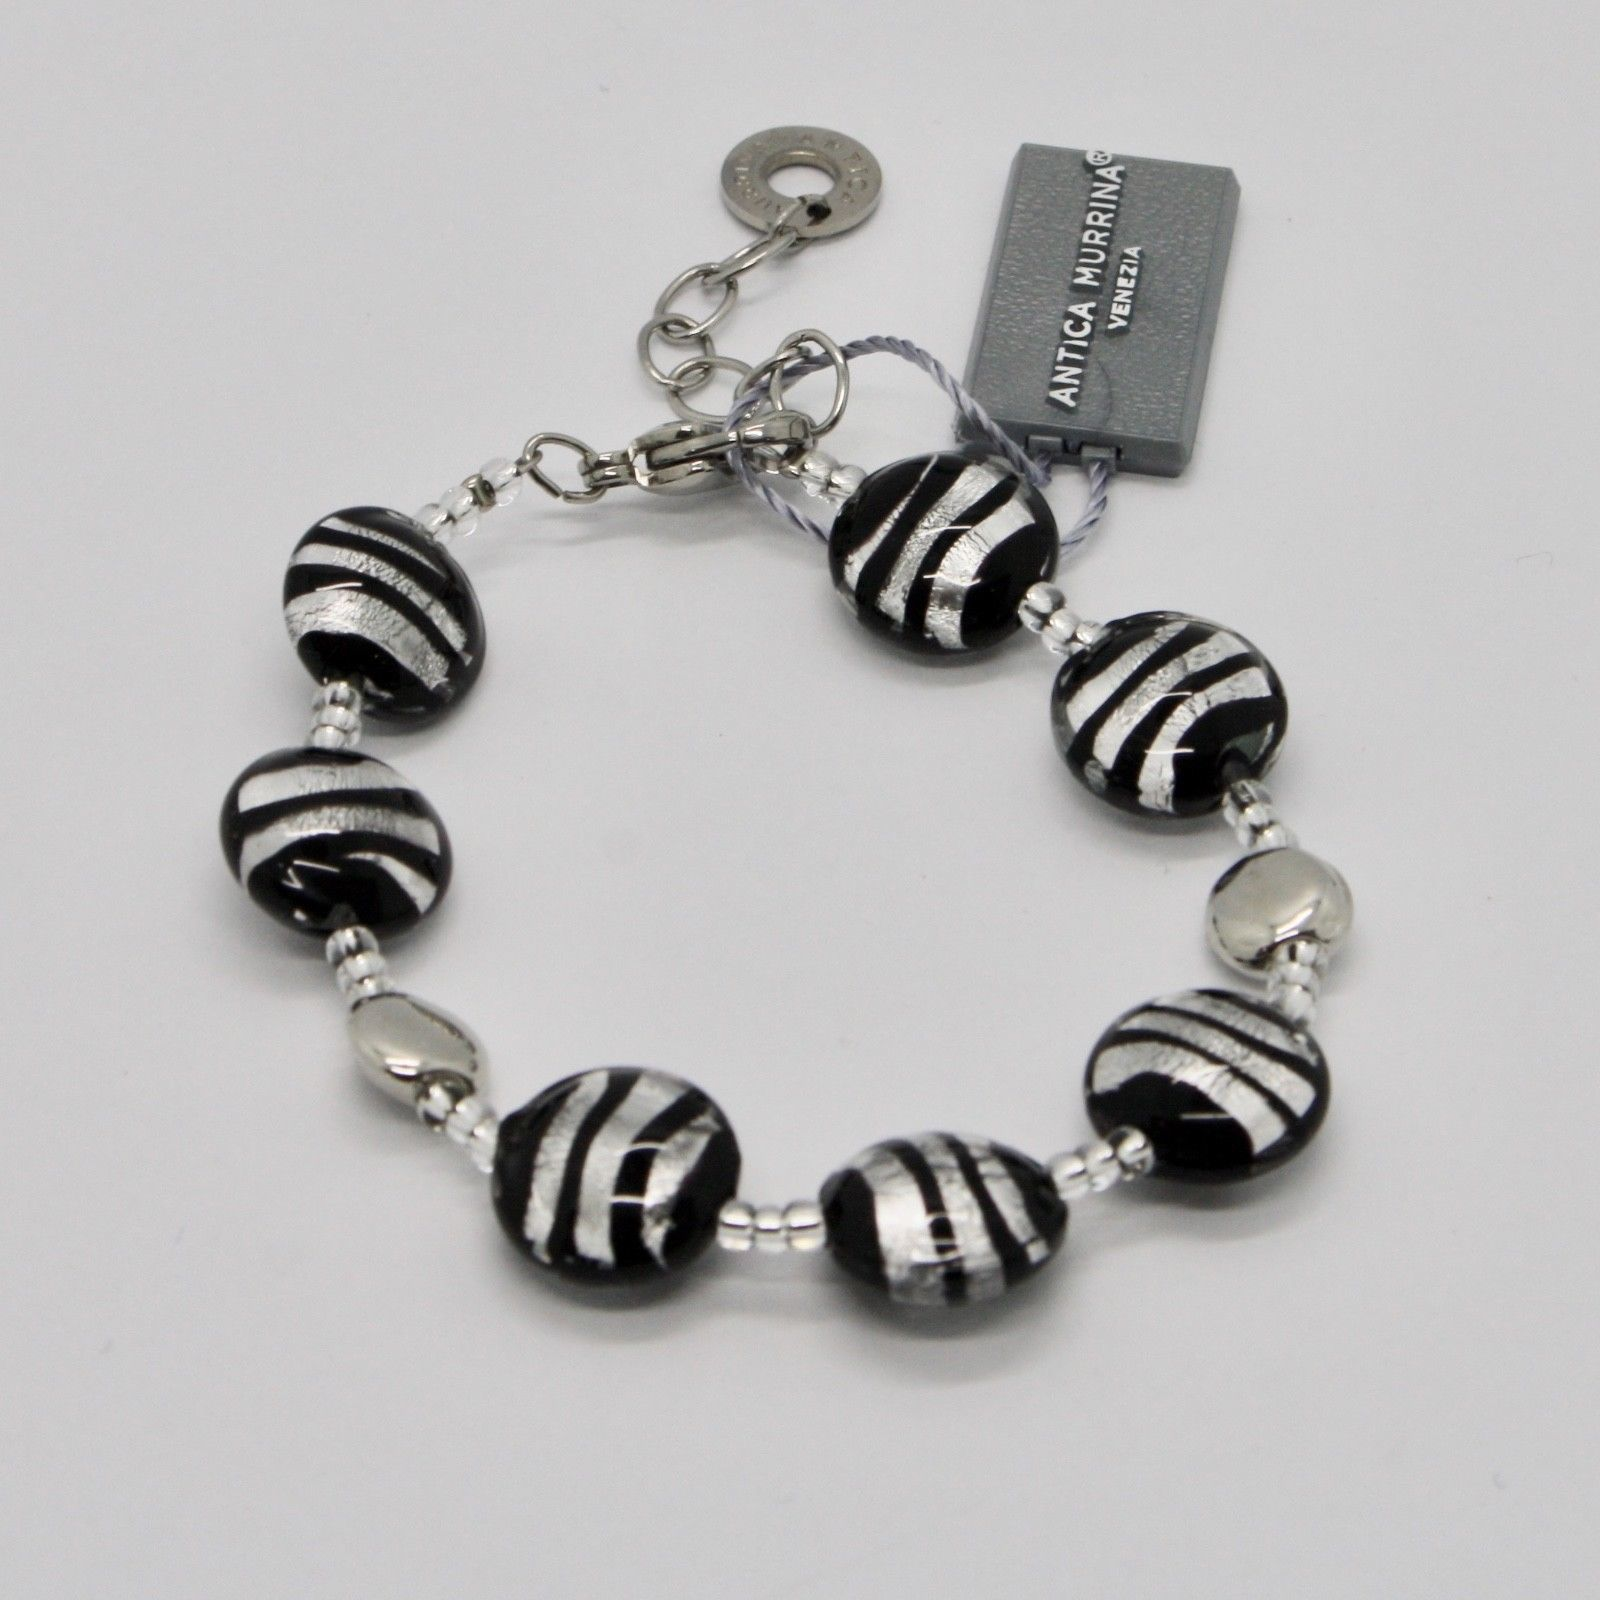 ANTICA MURRINA VENEZIA BRACELET WITH MURANO GLASS BLACK SILVER GRAY BR297A15